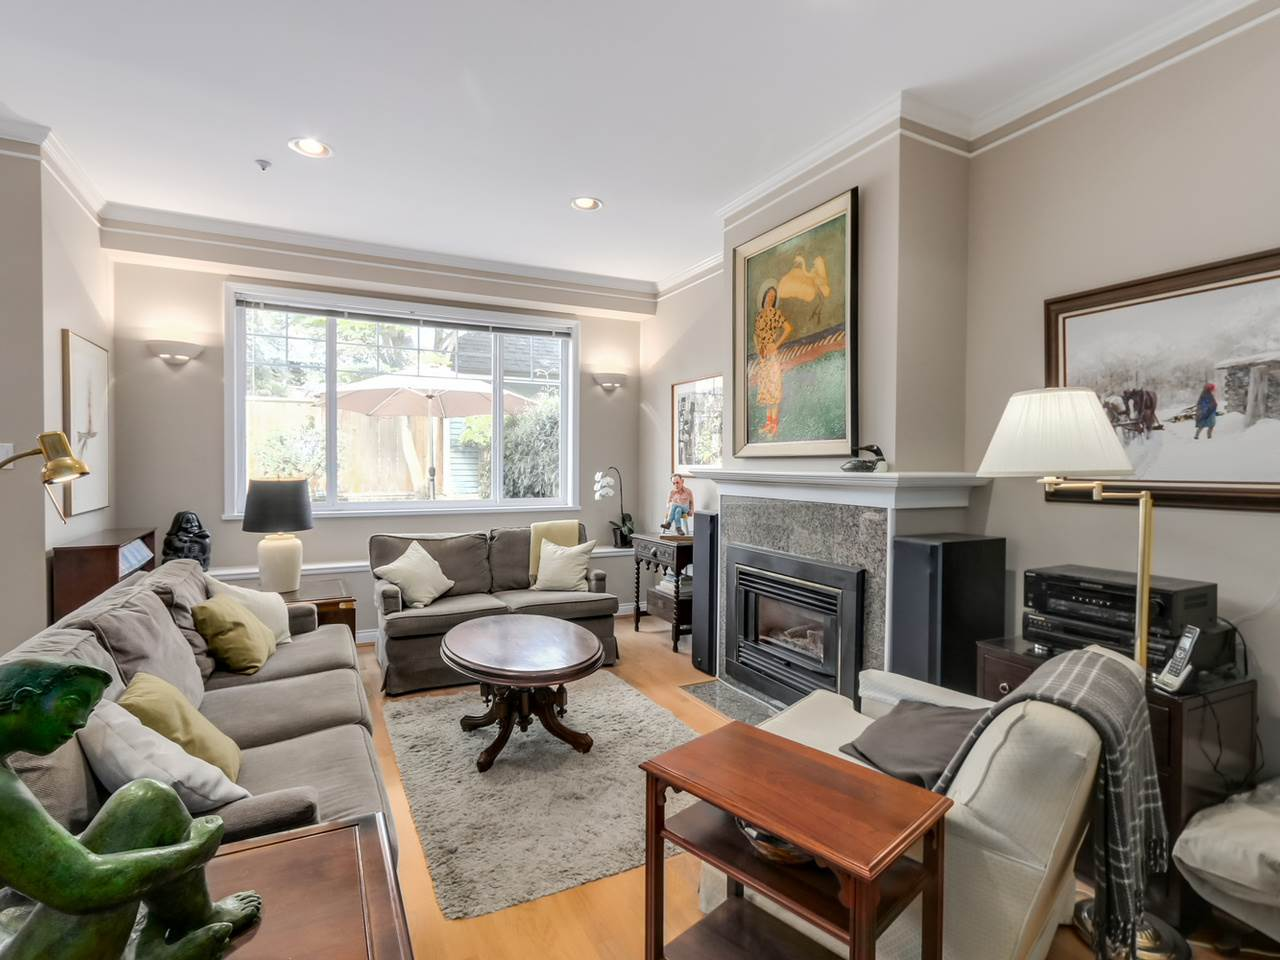 Photo 3: 1825 W 11TH Avenue in Vancouver: Kitsilano Townhouse for sale (Vancouver West)  : MLS® # R2061107